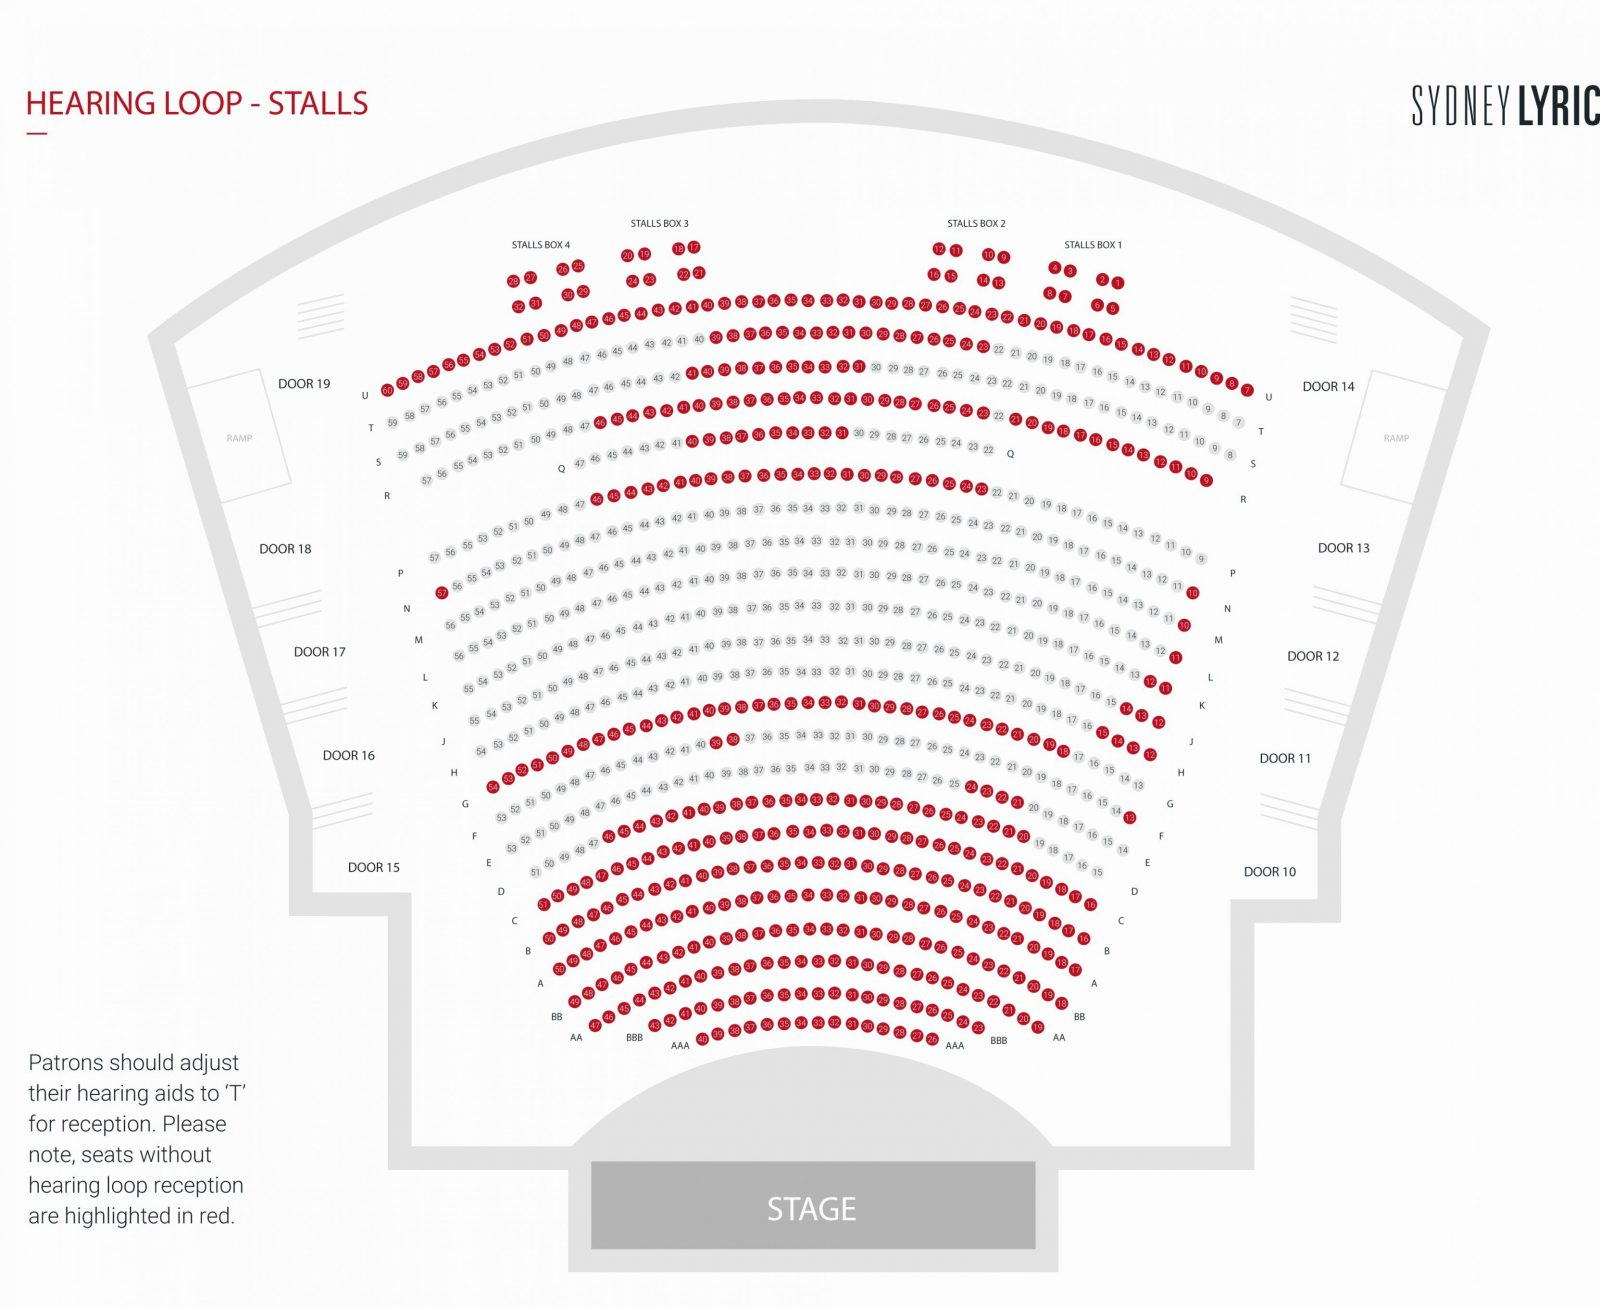 Metropolitan Opera Seating Plan New Seating Plan Sydney Lyric von Lyric Opera Seating Chart Bild